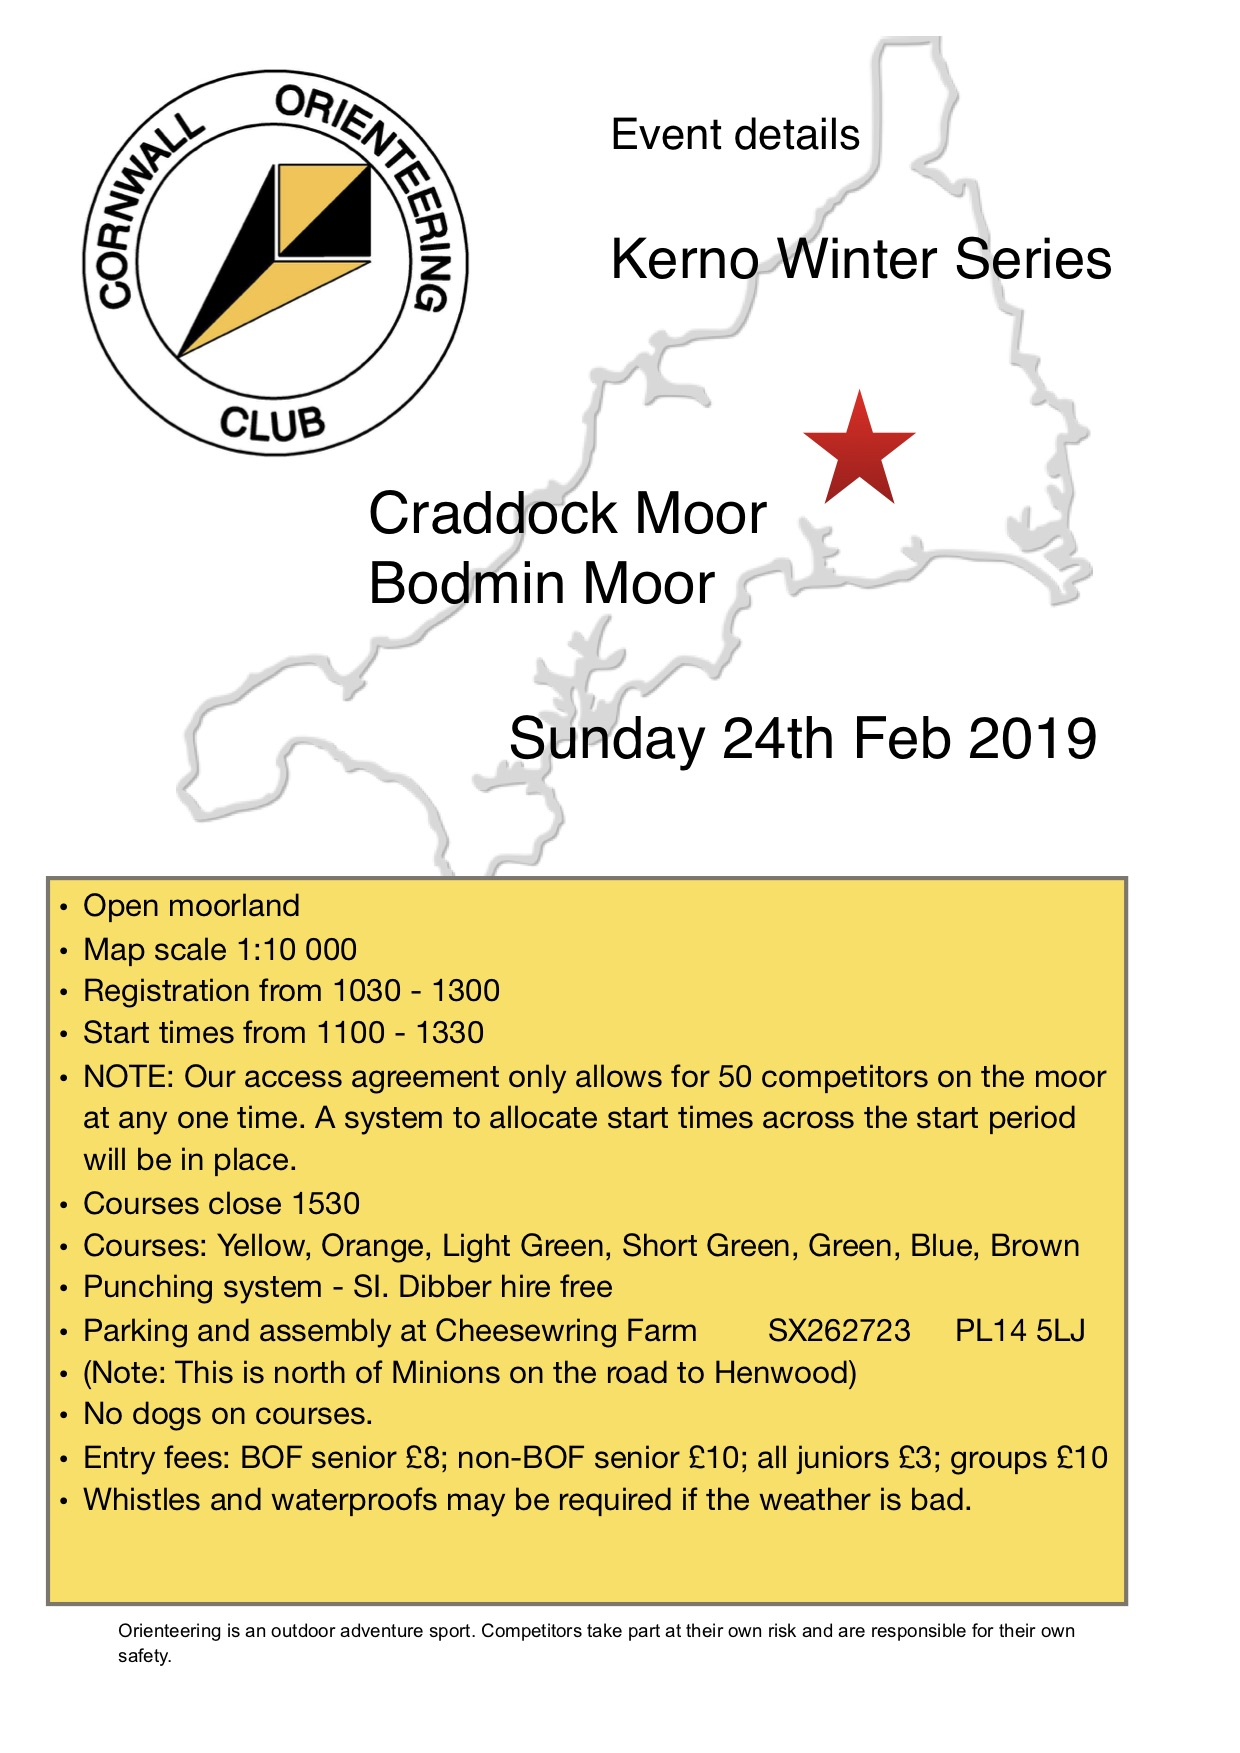 flyer for craddock moor event